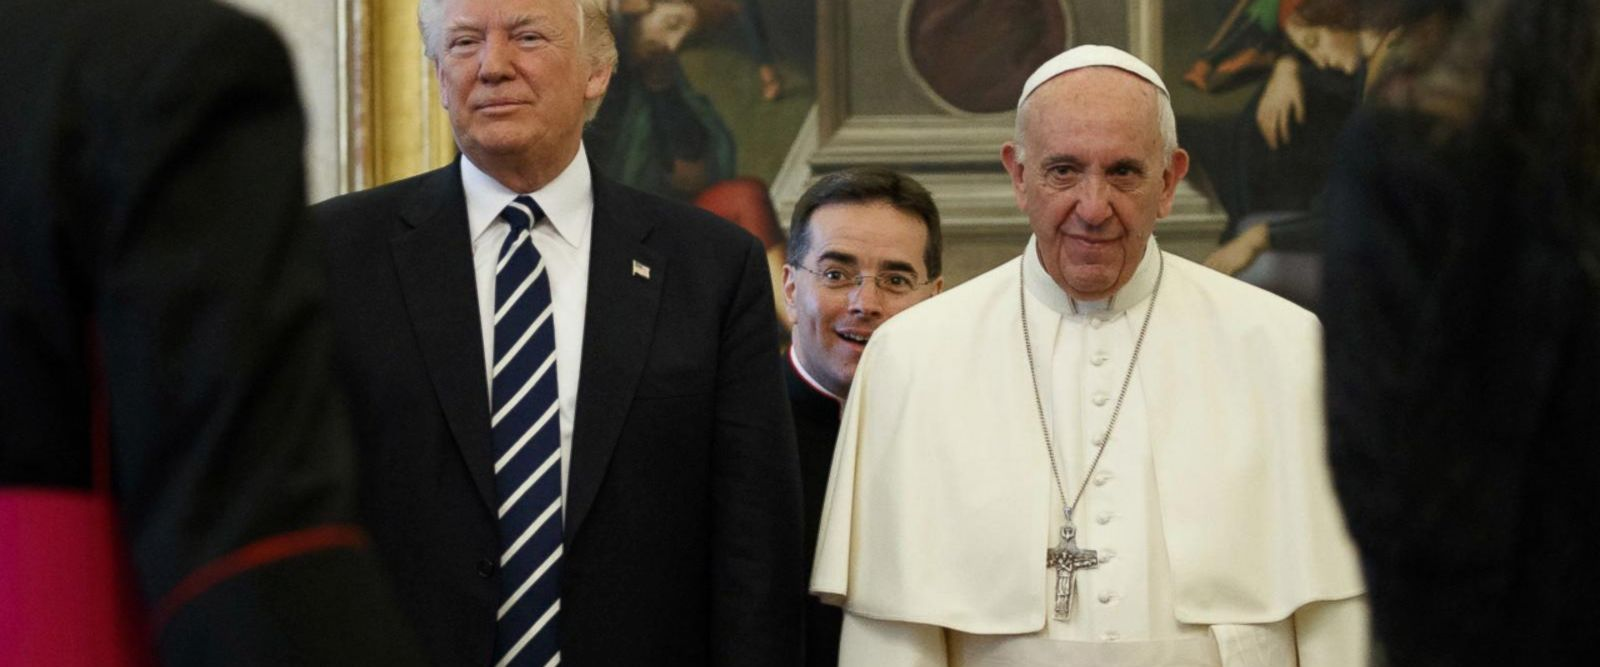 VIDEO: Pope Francis urges Trump to fight climate change